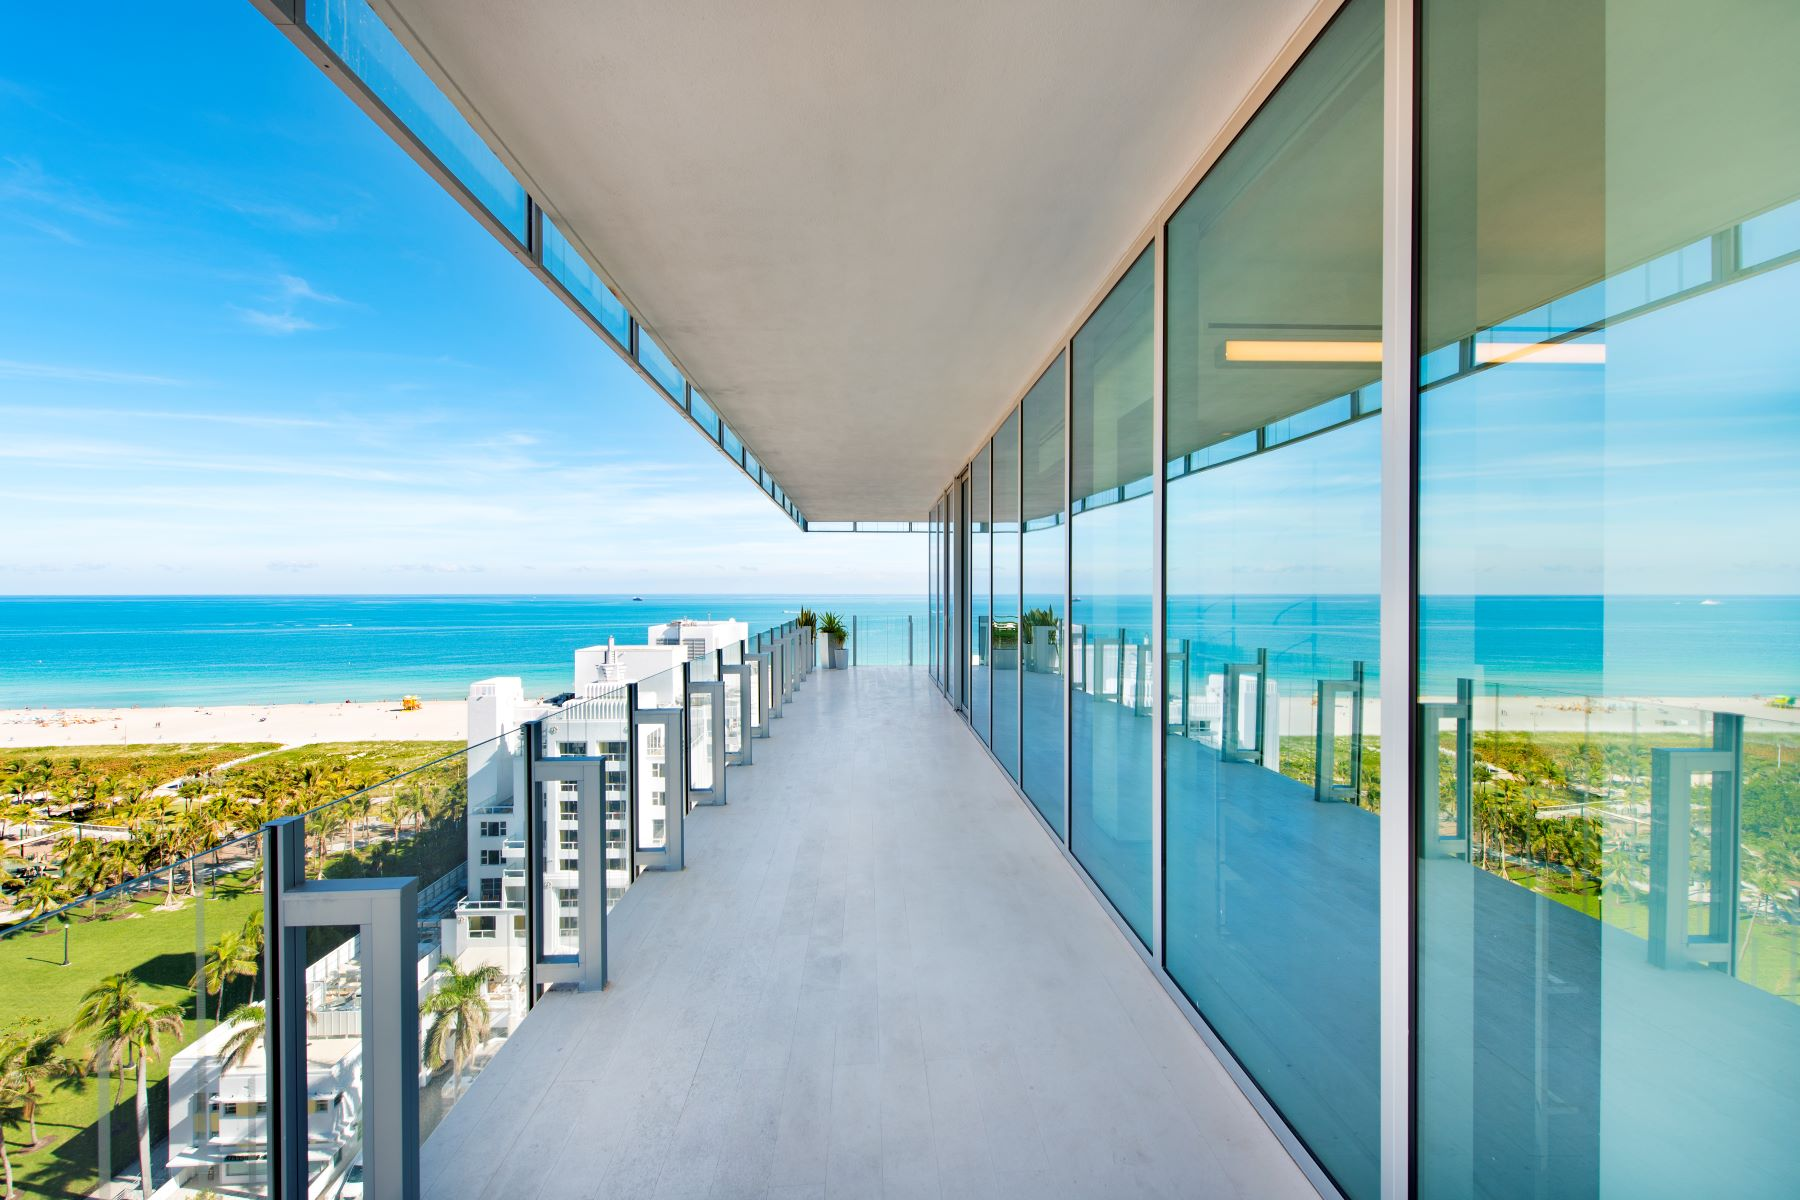 Additional photo for property listing at 120 Ocean Dr 120 Ocean Dr 1500 Miami Beach, Florida 33139 United States